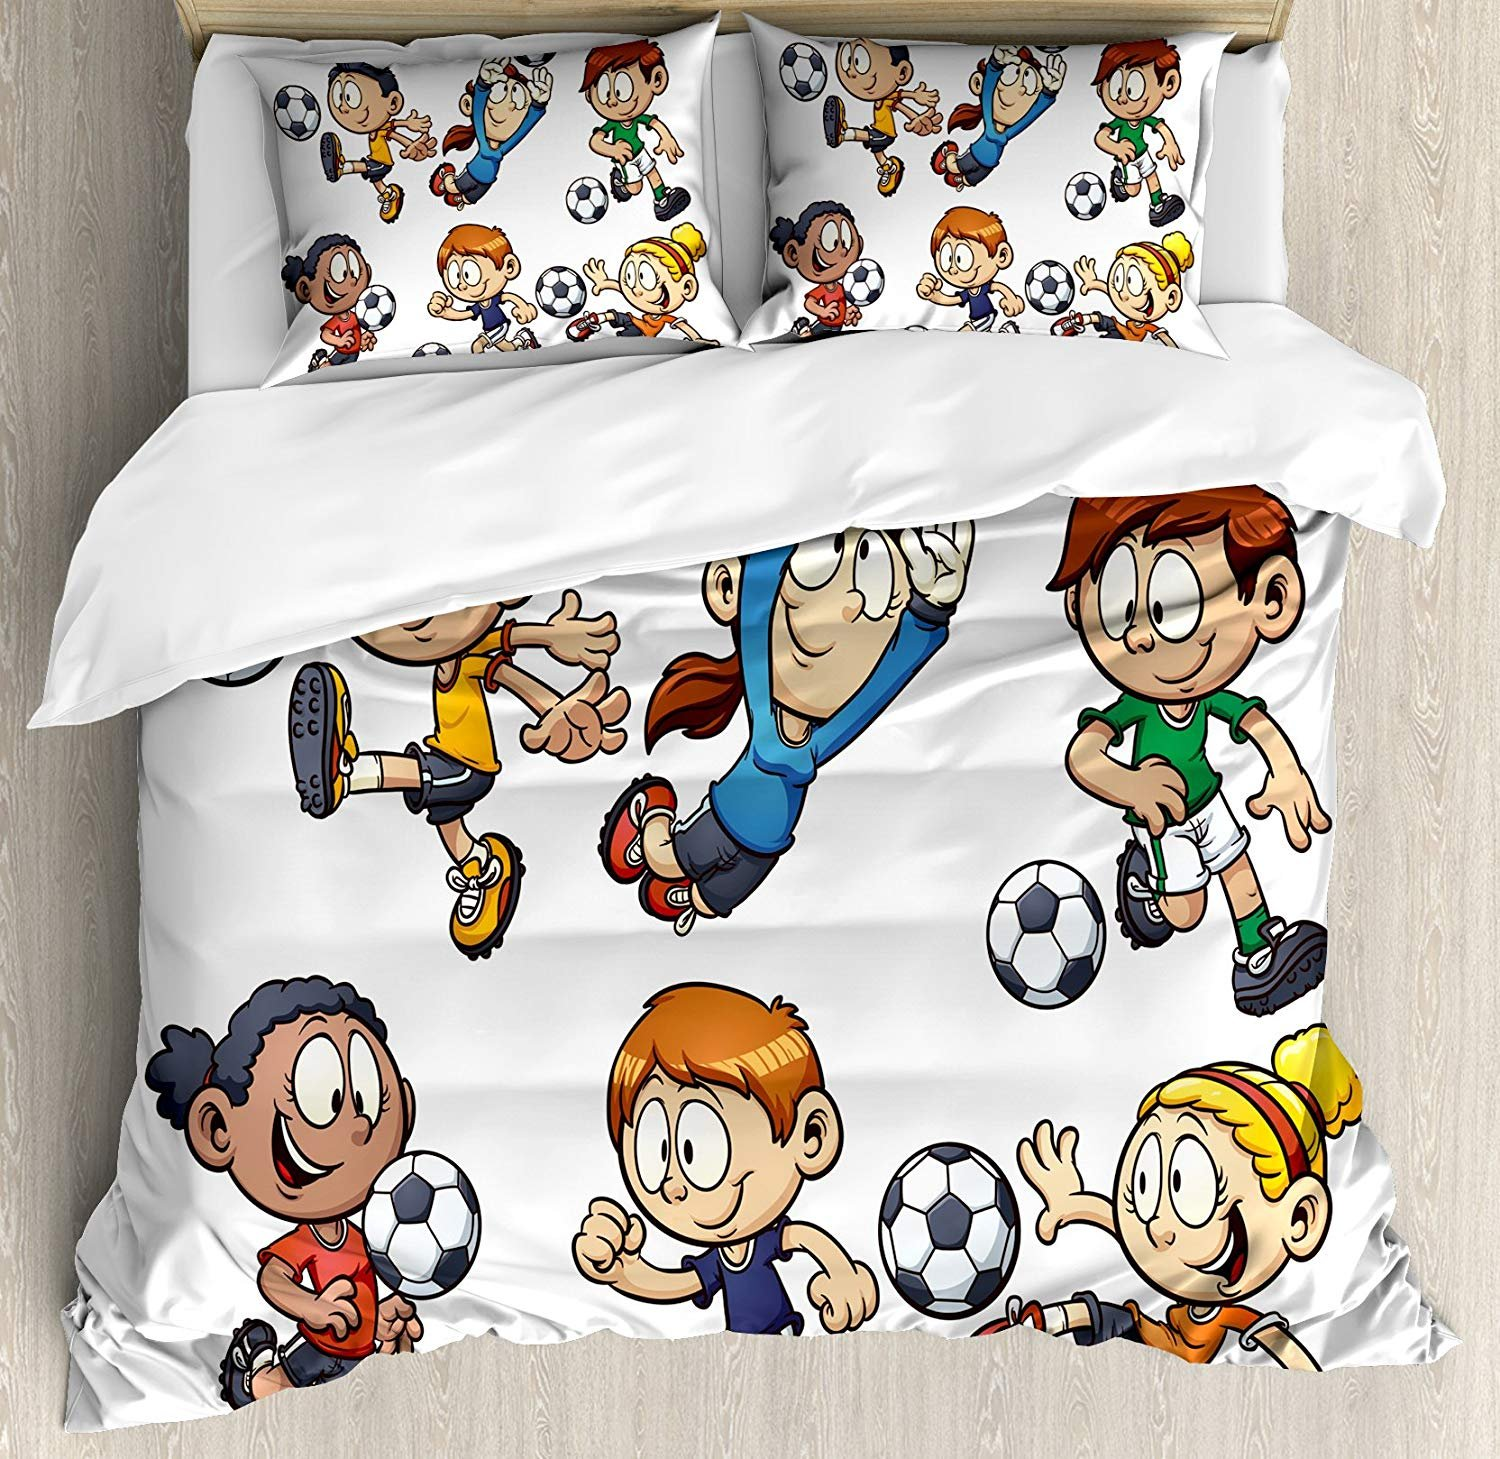 Twin XL Extra Long Bedding Set, Soccer Duvet Cover Set, Children Cartoon Drawing Style Kids Playing Football Happy Moments Active Lifestyle, Cosy House Collection 4 Piece Bedding Sets